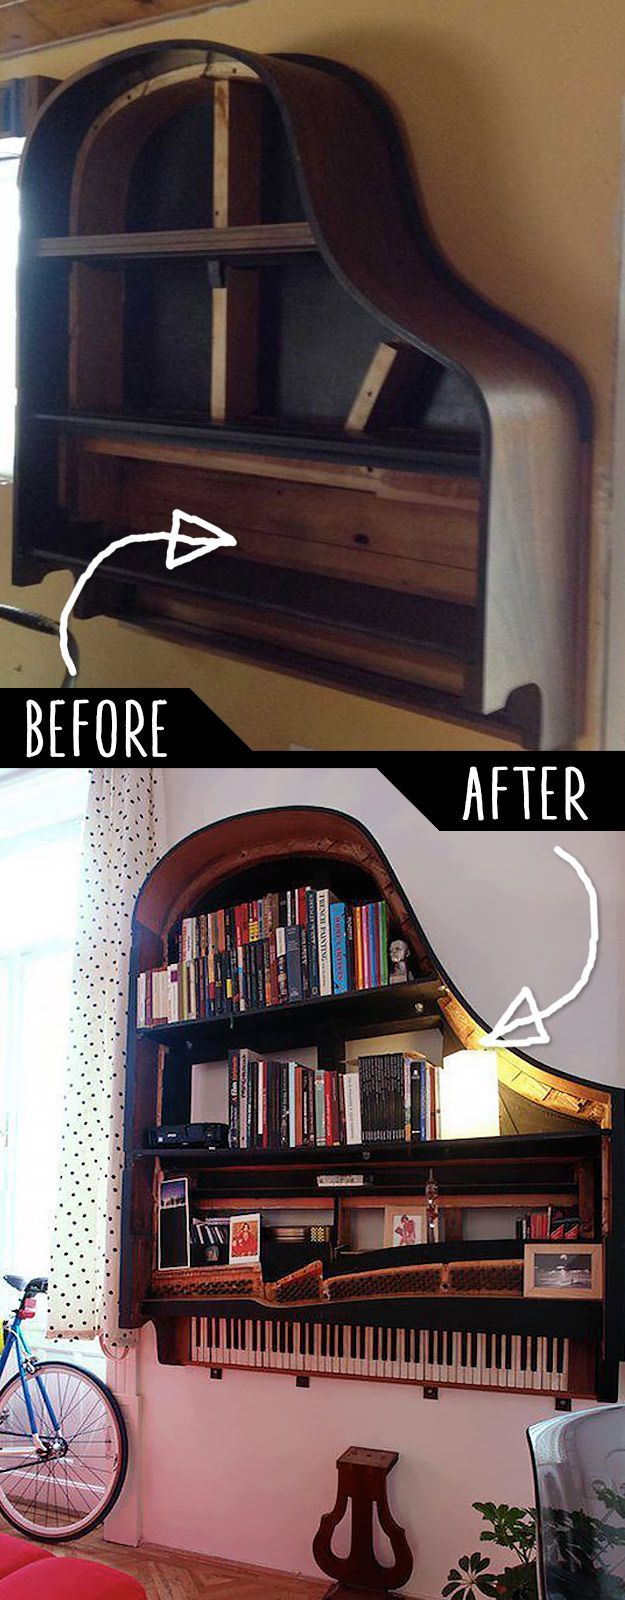 Charmant DIY #furniture Hacks | Grand Piano Bookshelf | Cool Ideas For Creative Do  It Yourself